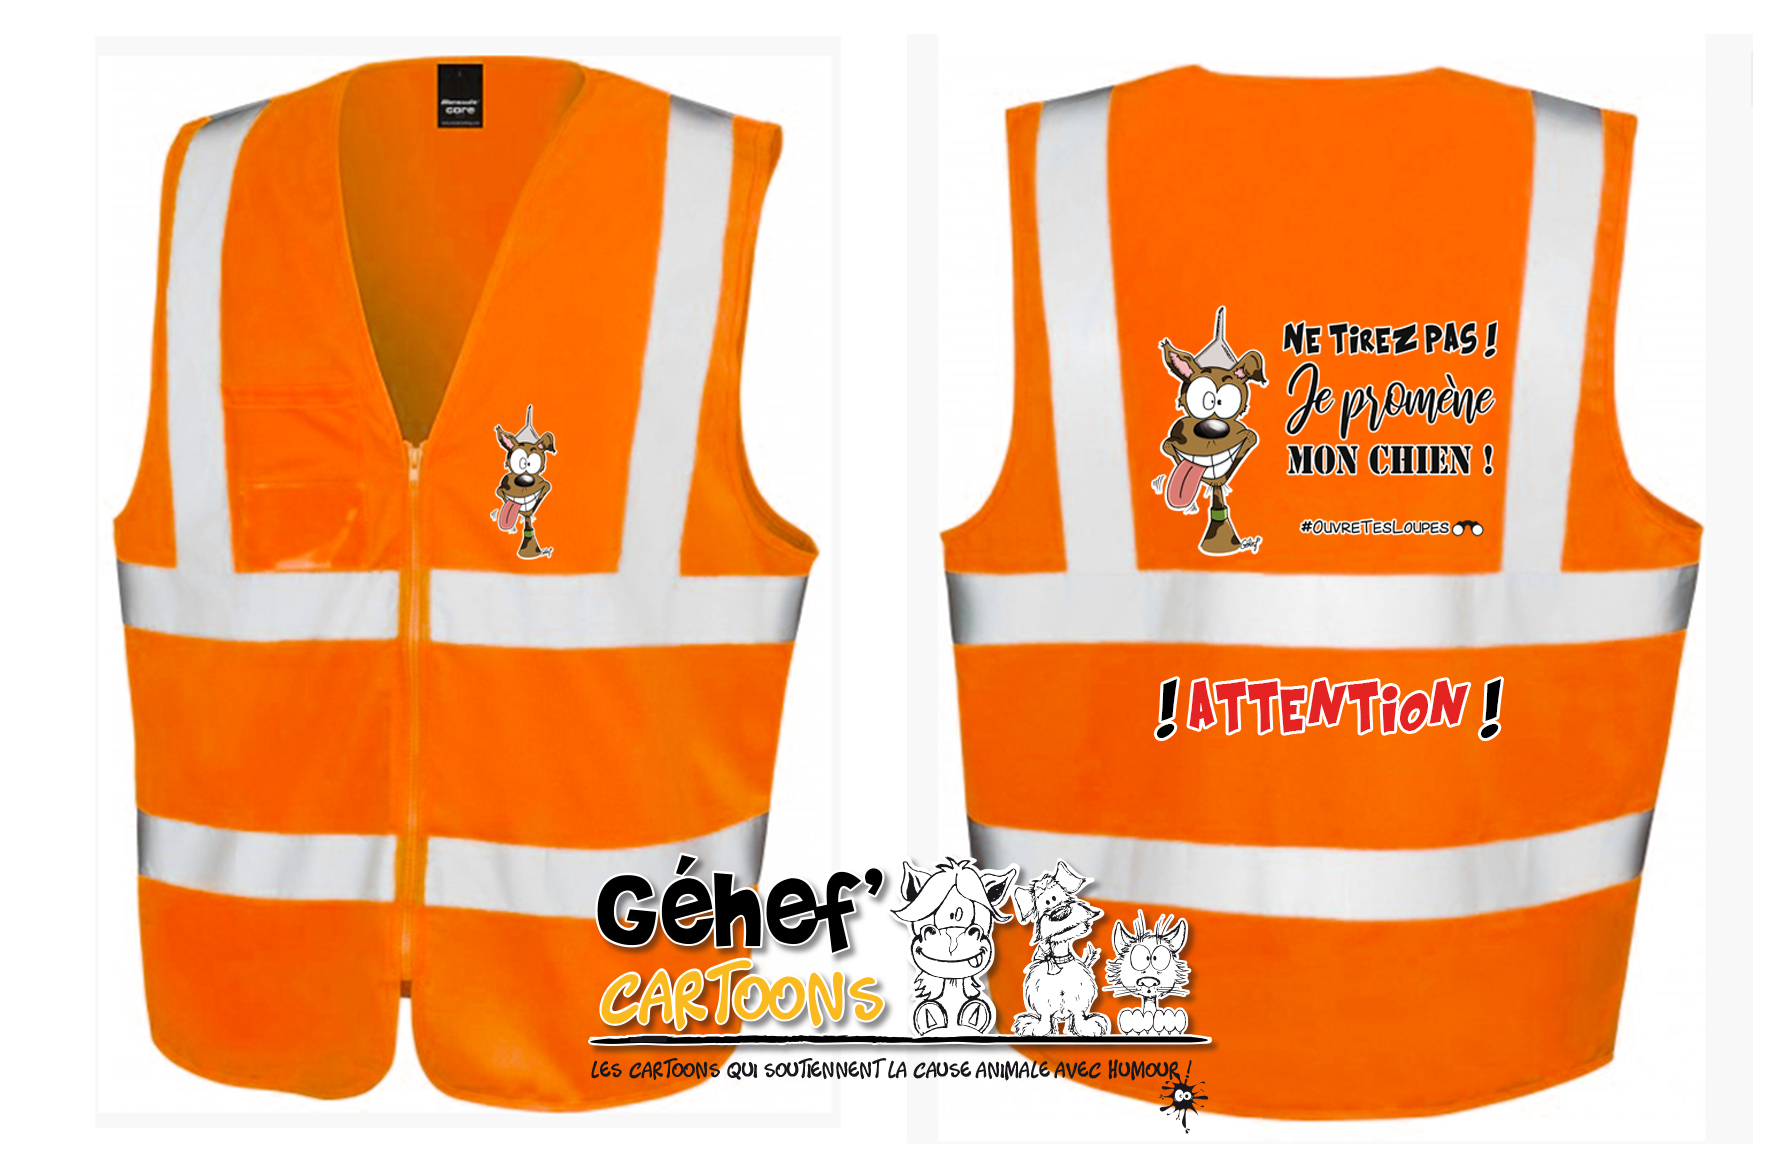 gilet-unisex-R202X-orange-tirezpaschien.